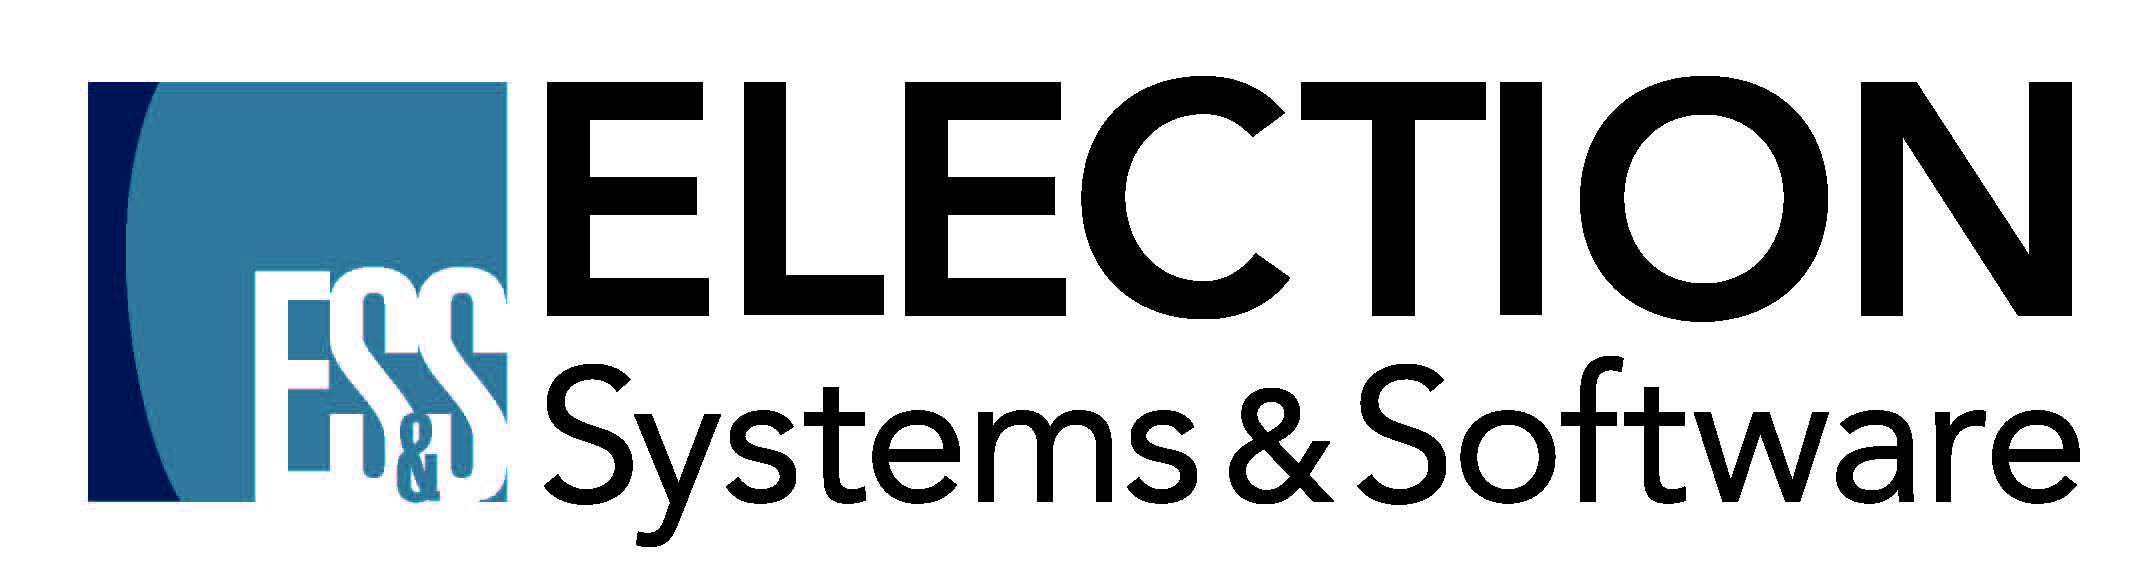 Election Systems & Software